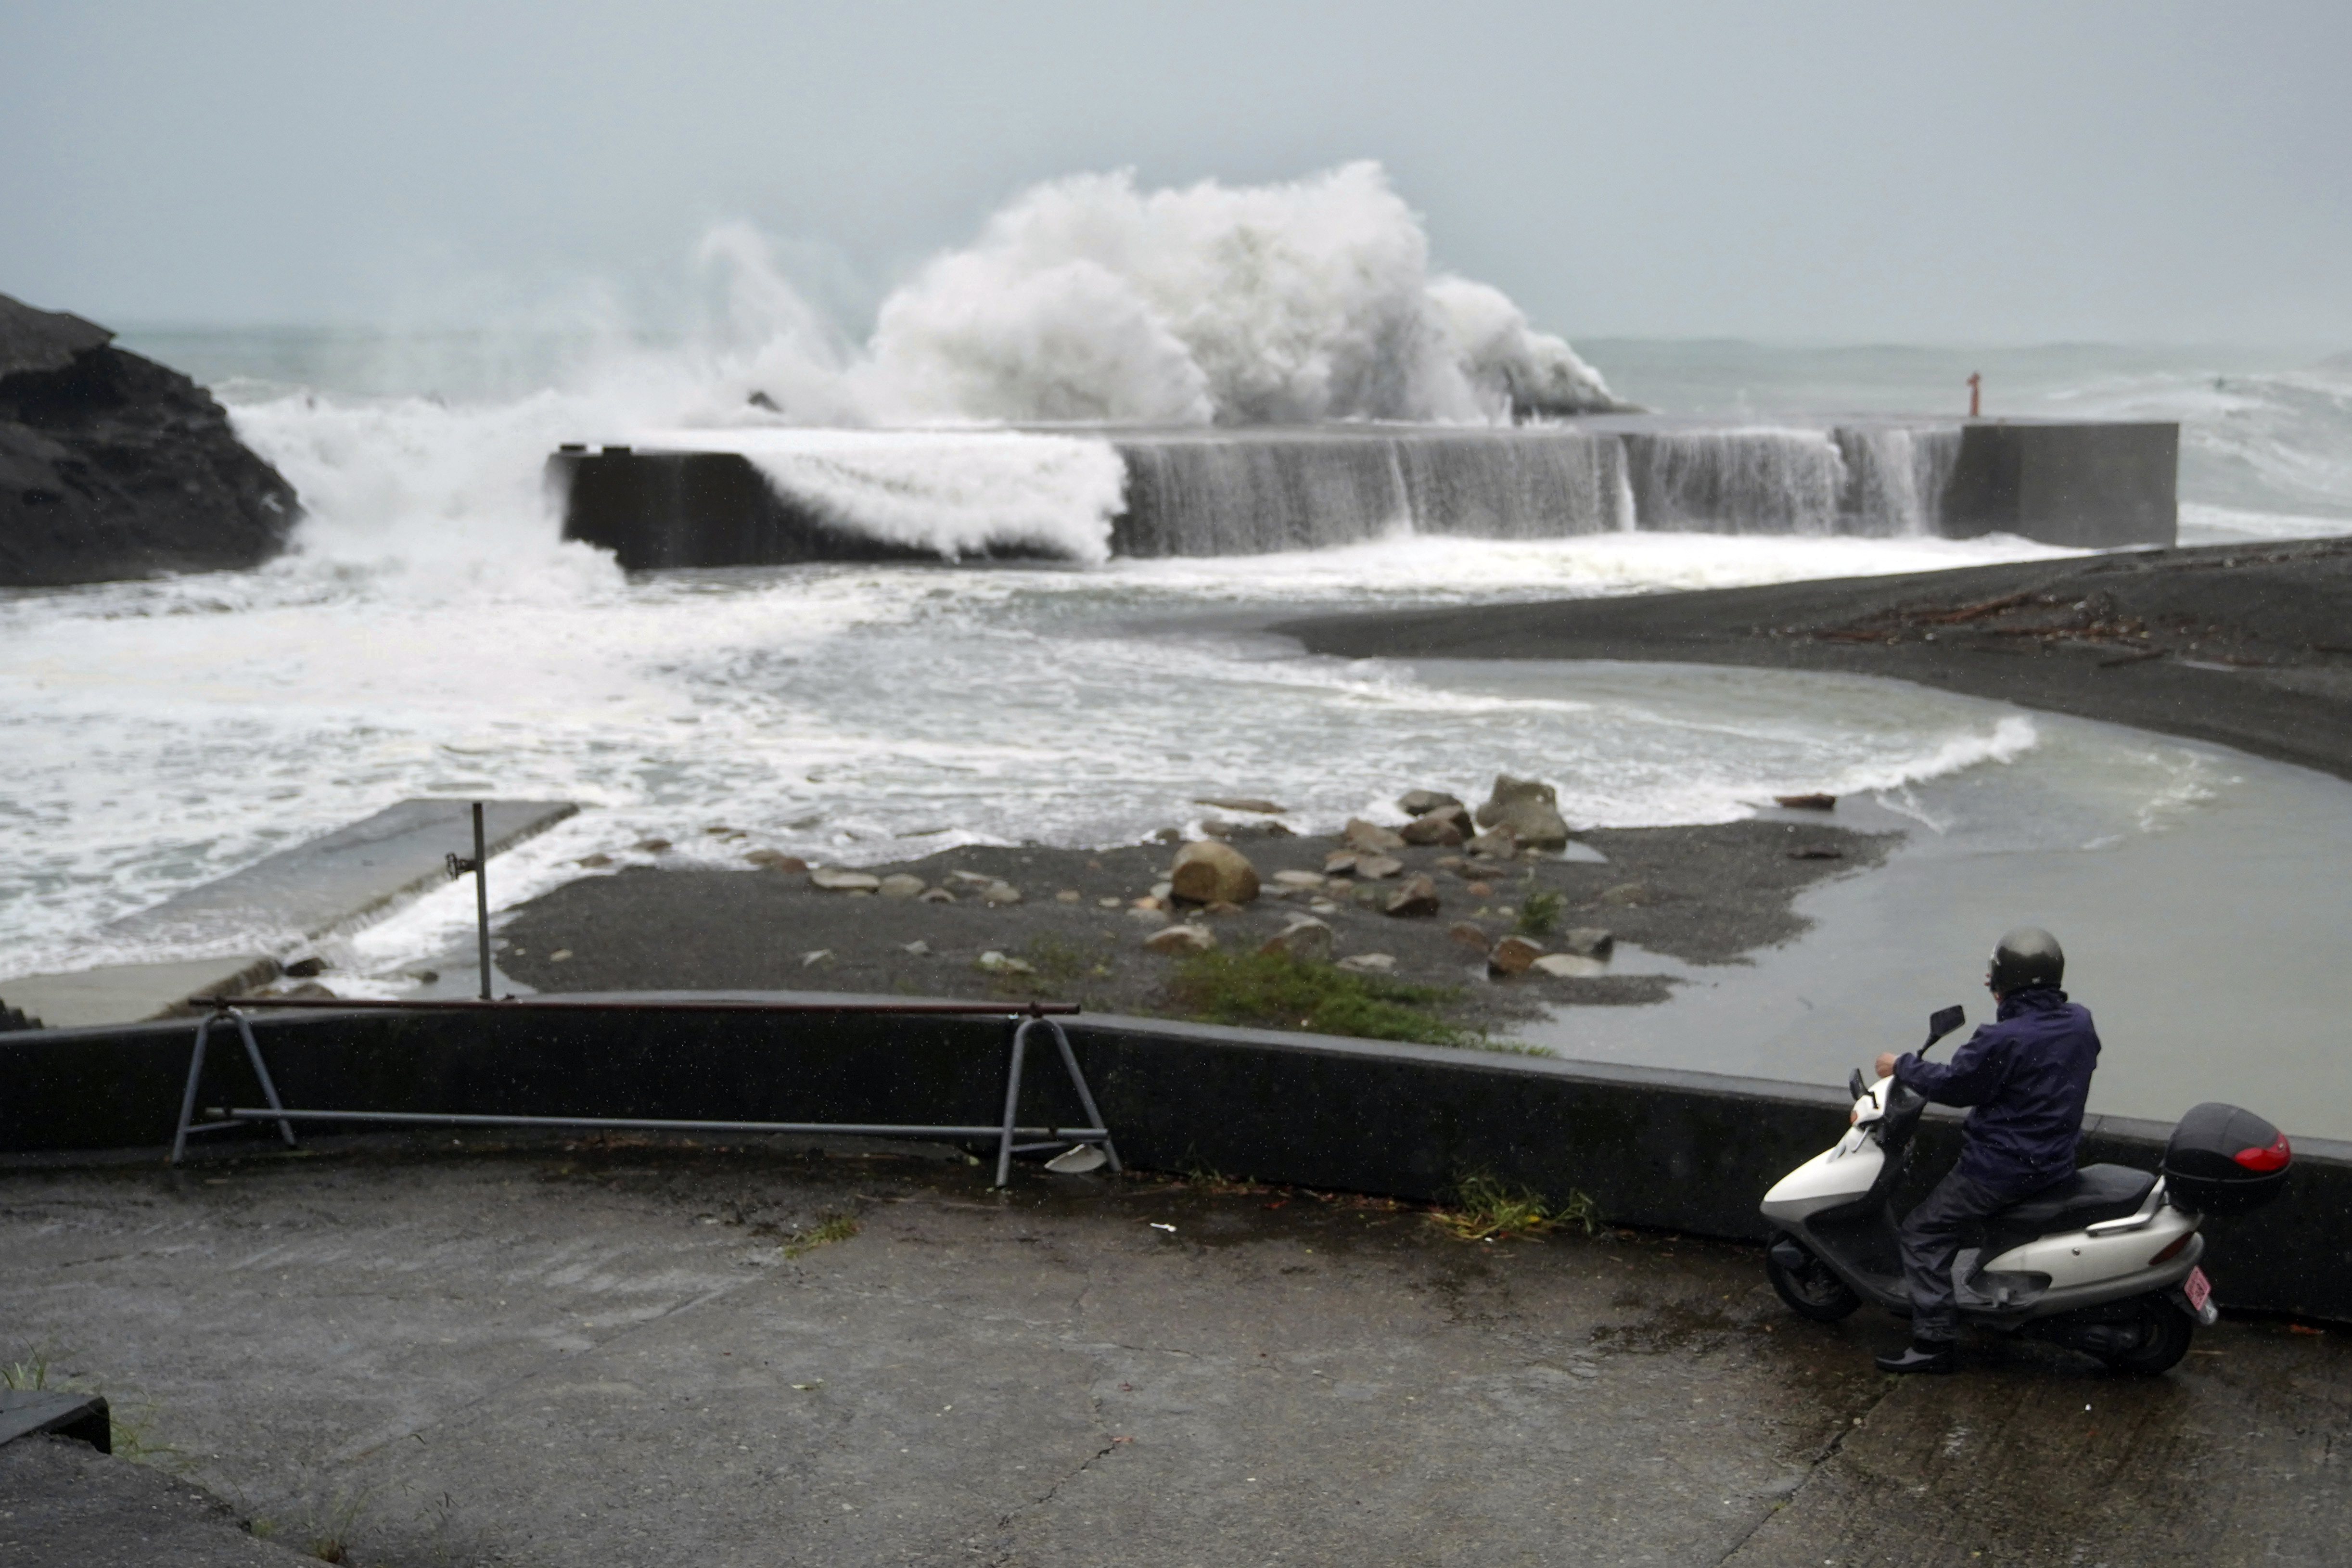 A man on a scooter watches as surging waves hit against the breakwater as Typhoon Hagibis approaches a port in Kumano, Mie Prefecture, Japan, Saturday, Oct. 12, 2019. (AP Photo/Toru Hanai)